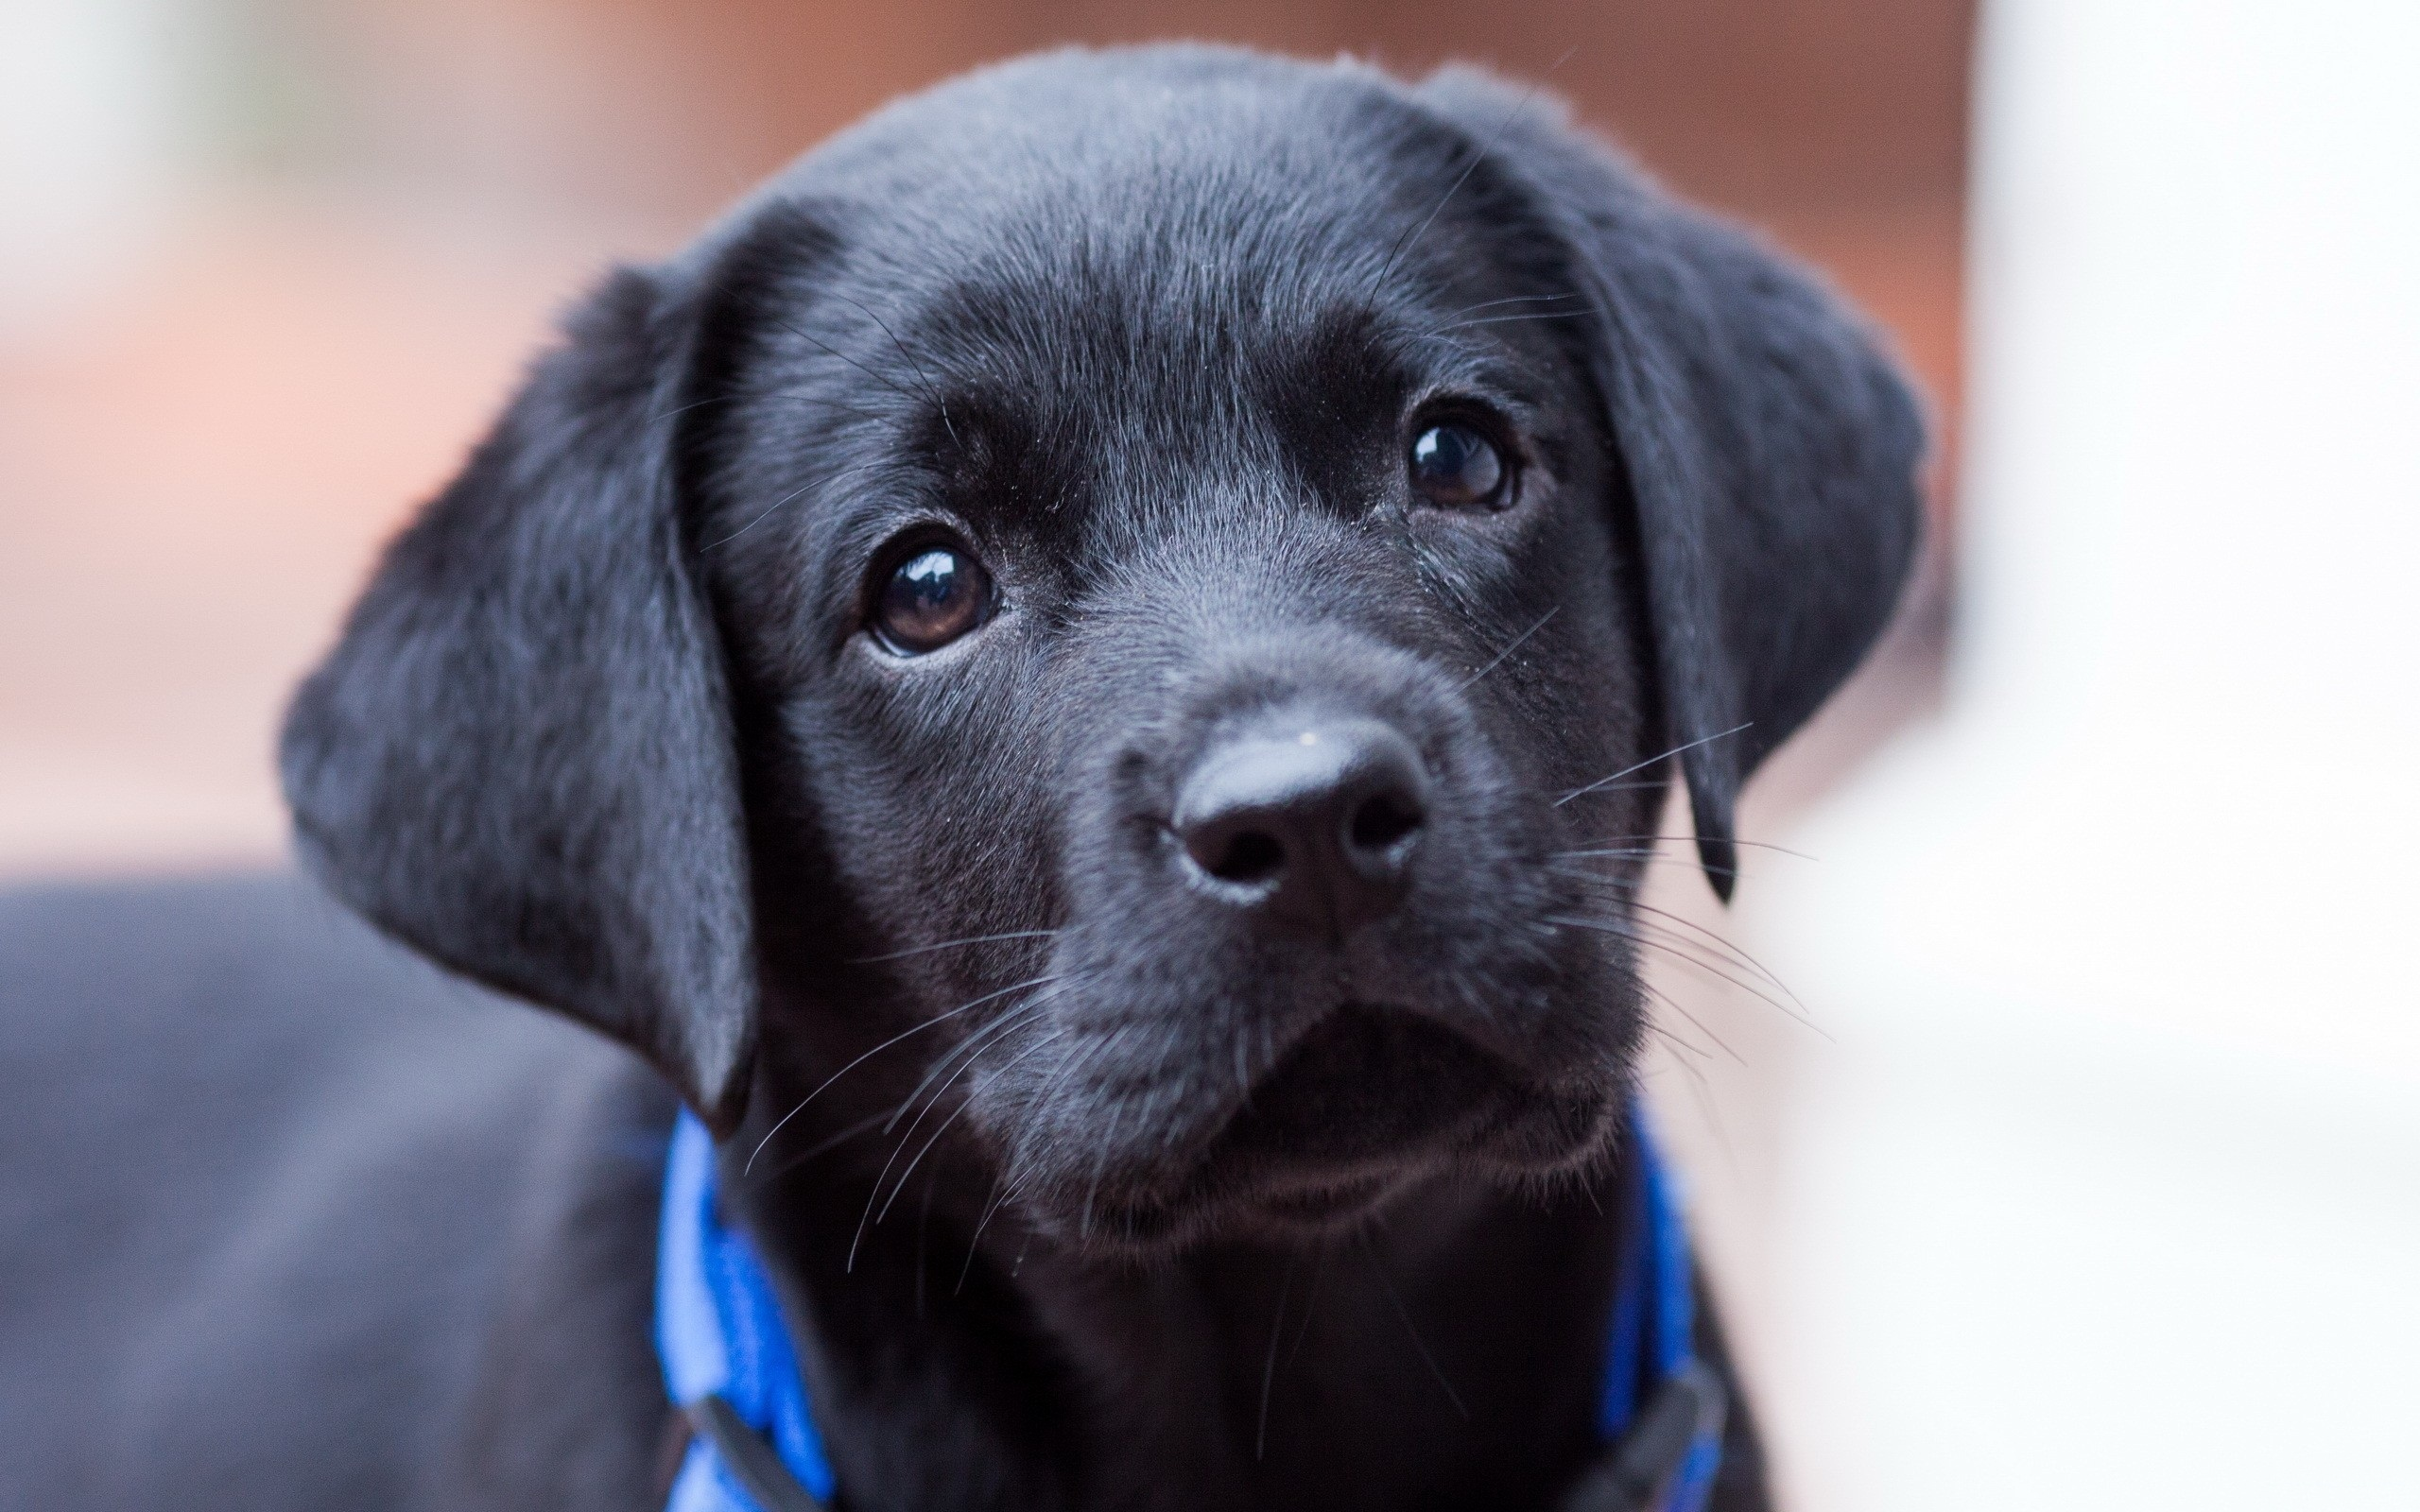 Cute Black Puppy